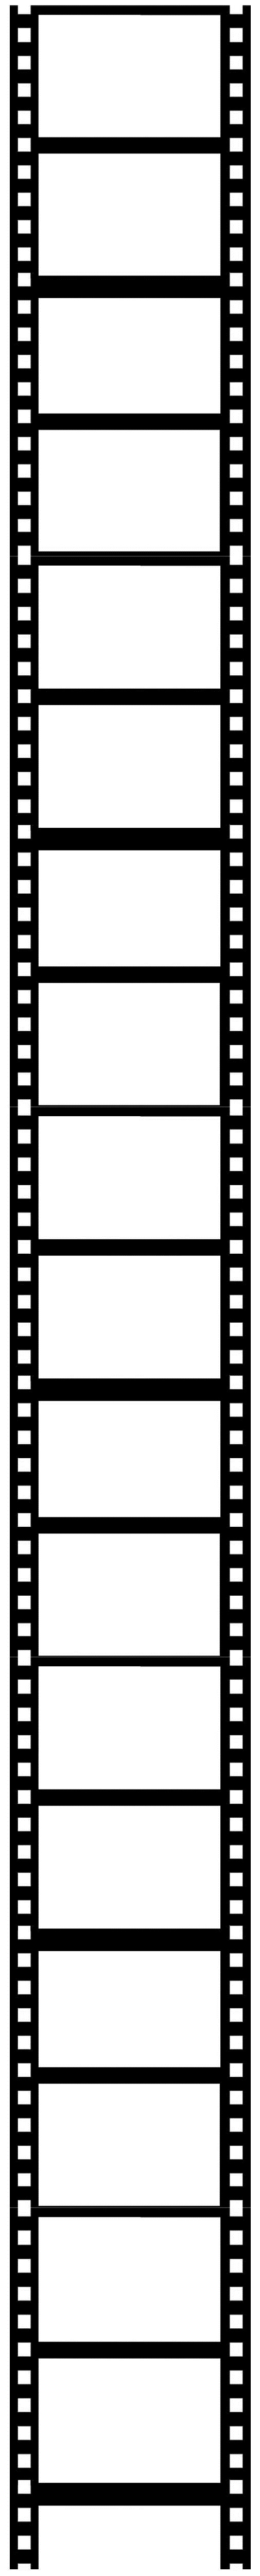 Tall Film Strip 5